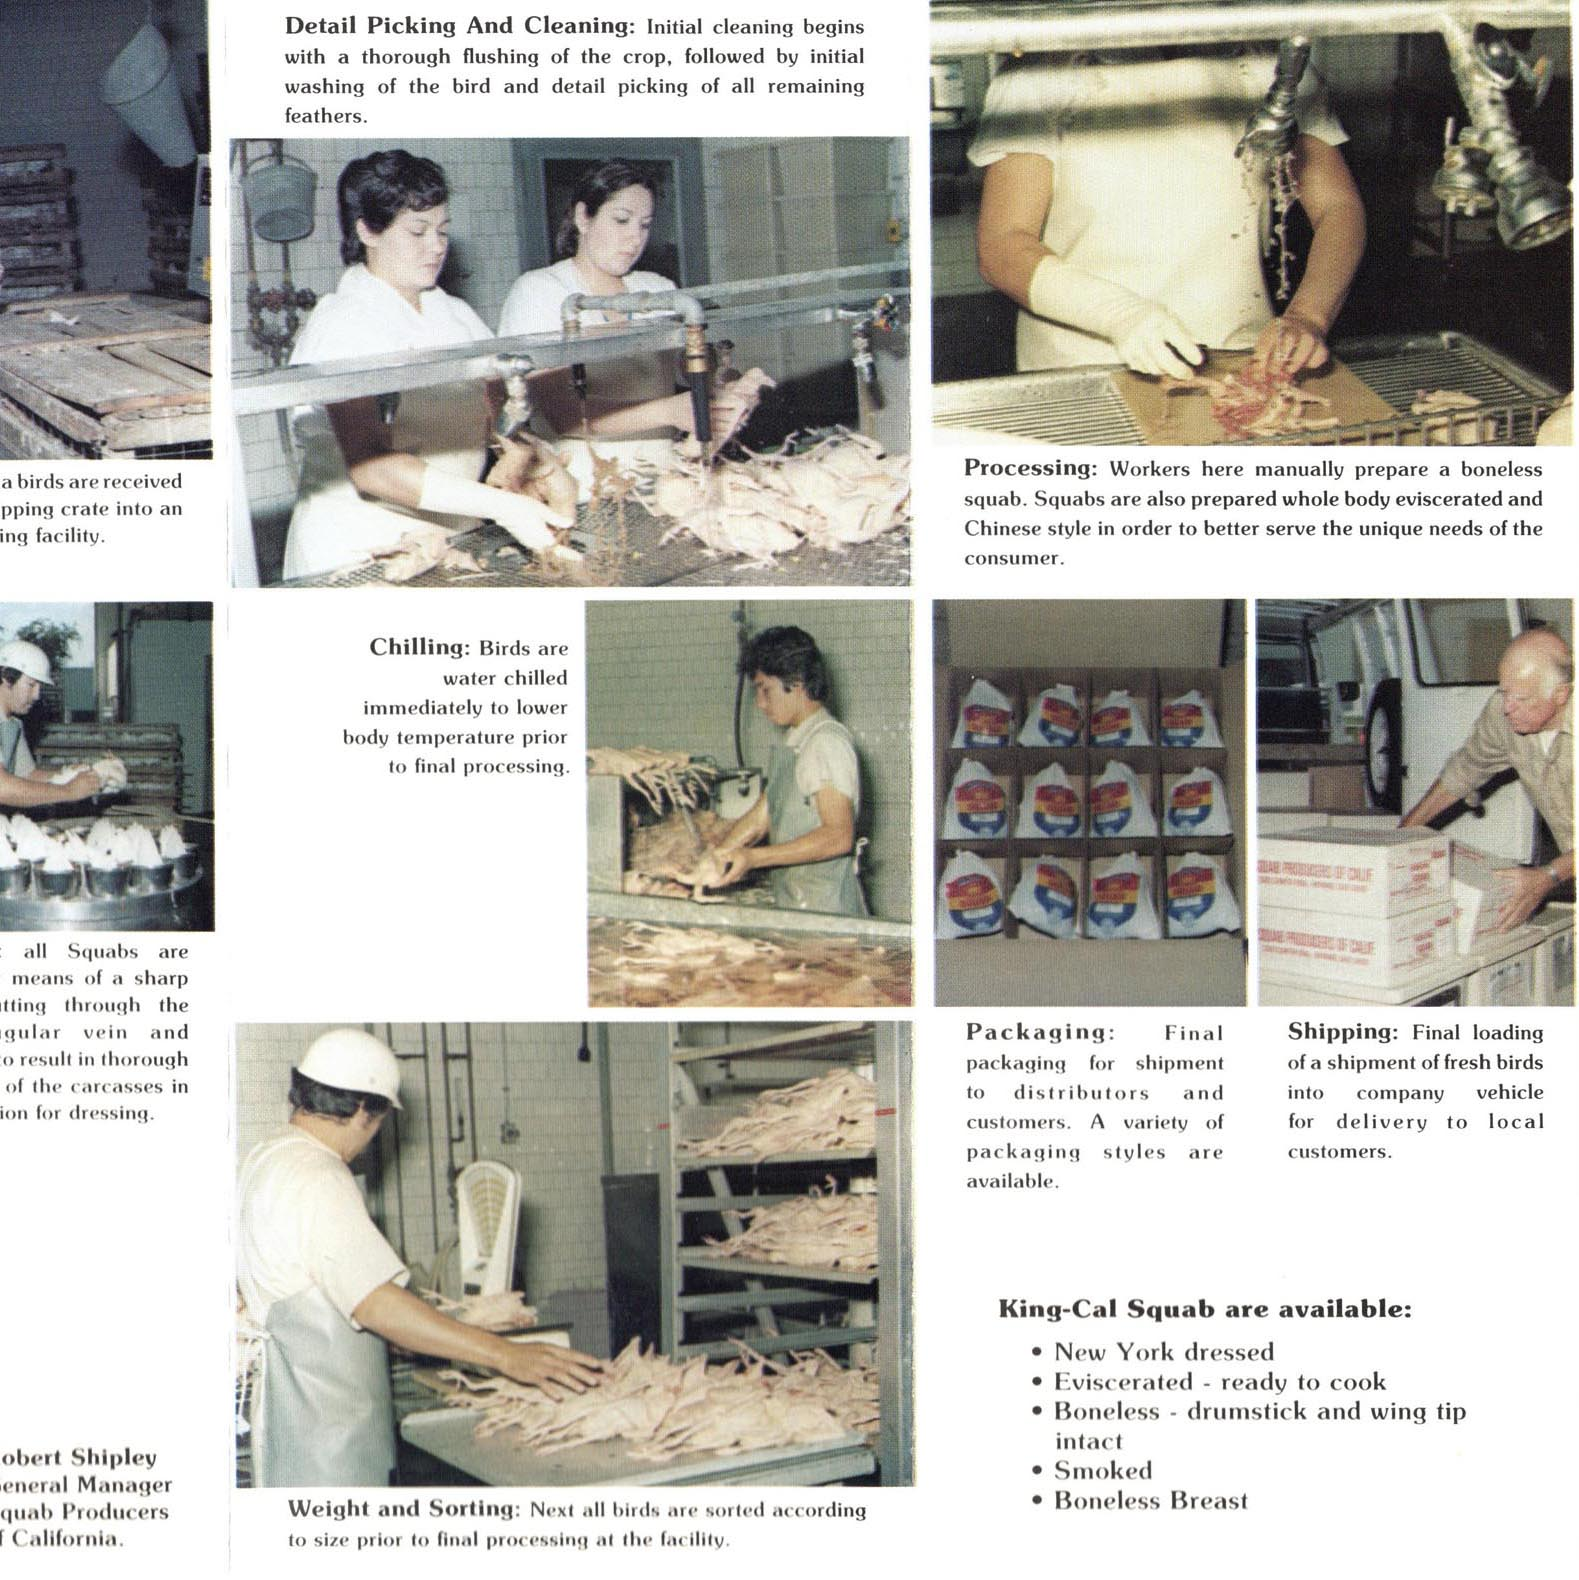 1981. Photos from our Hayward processing plant.